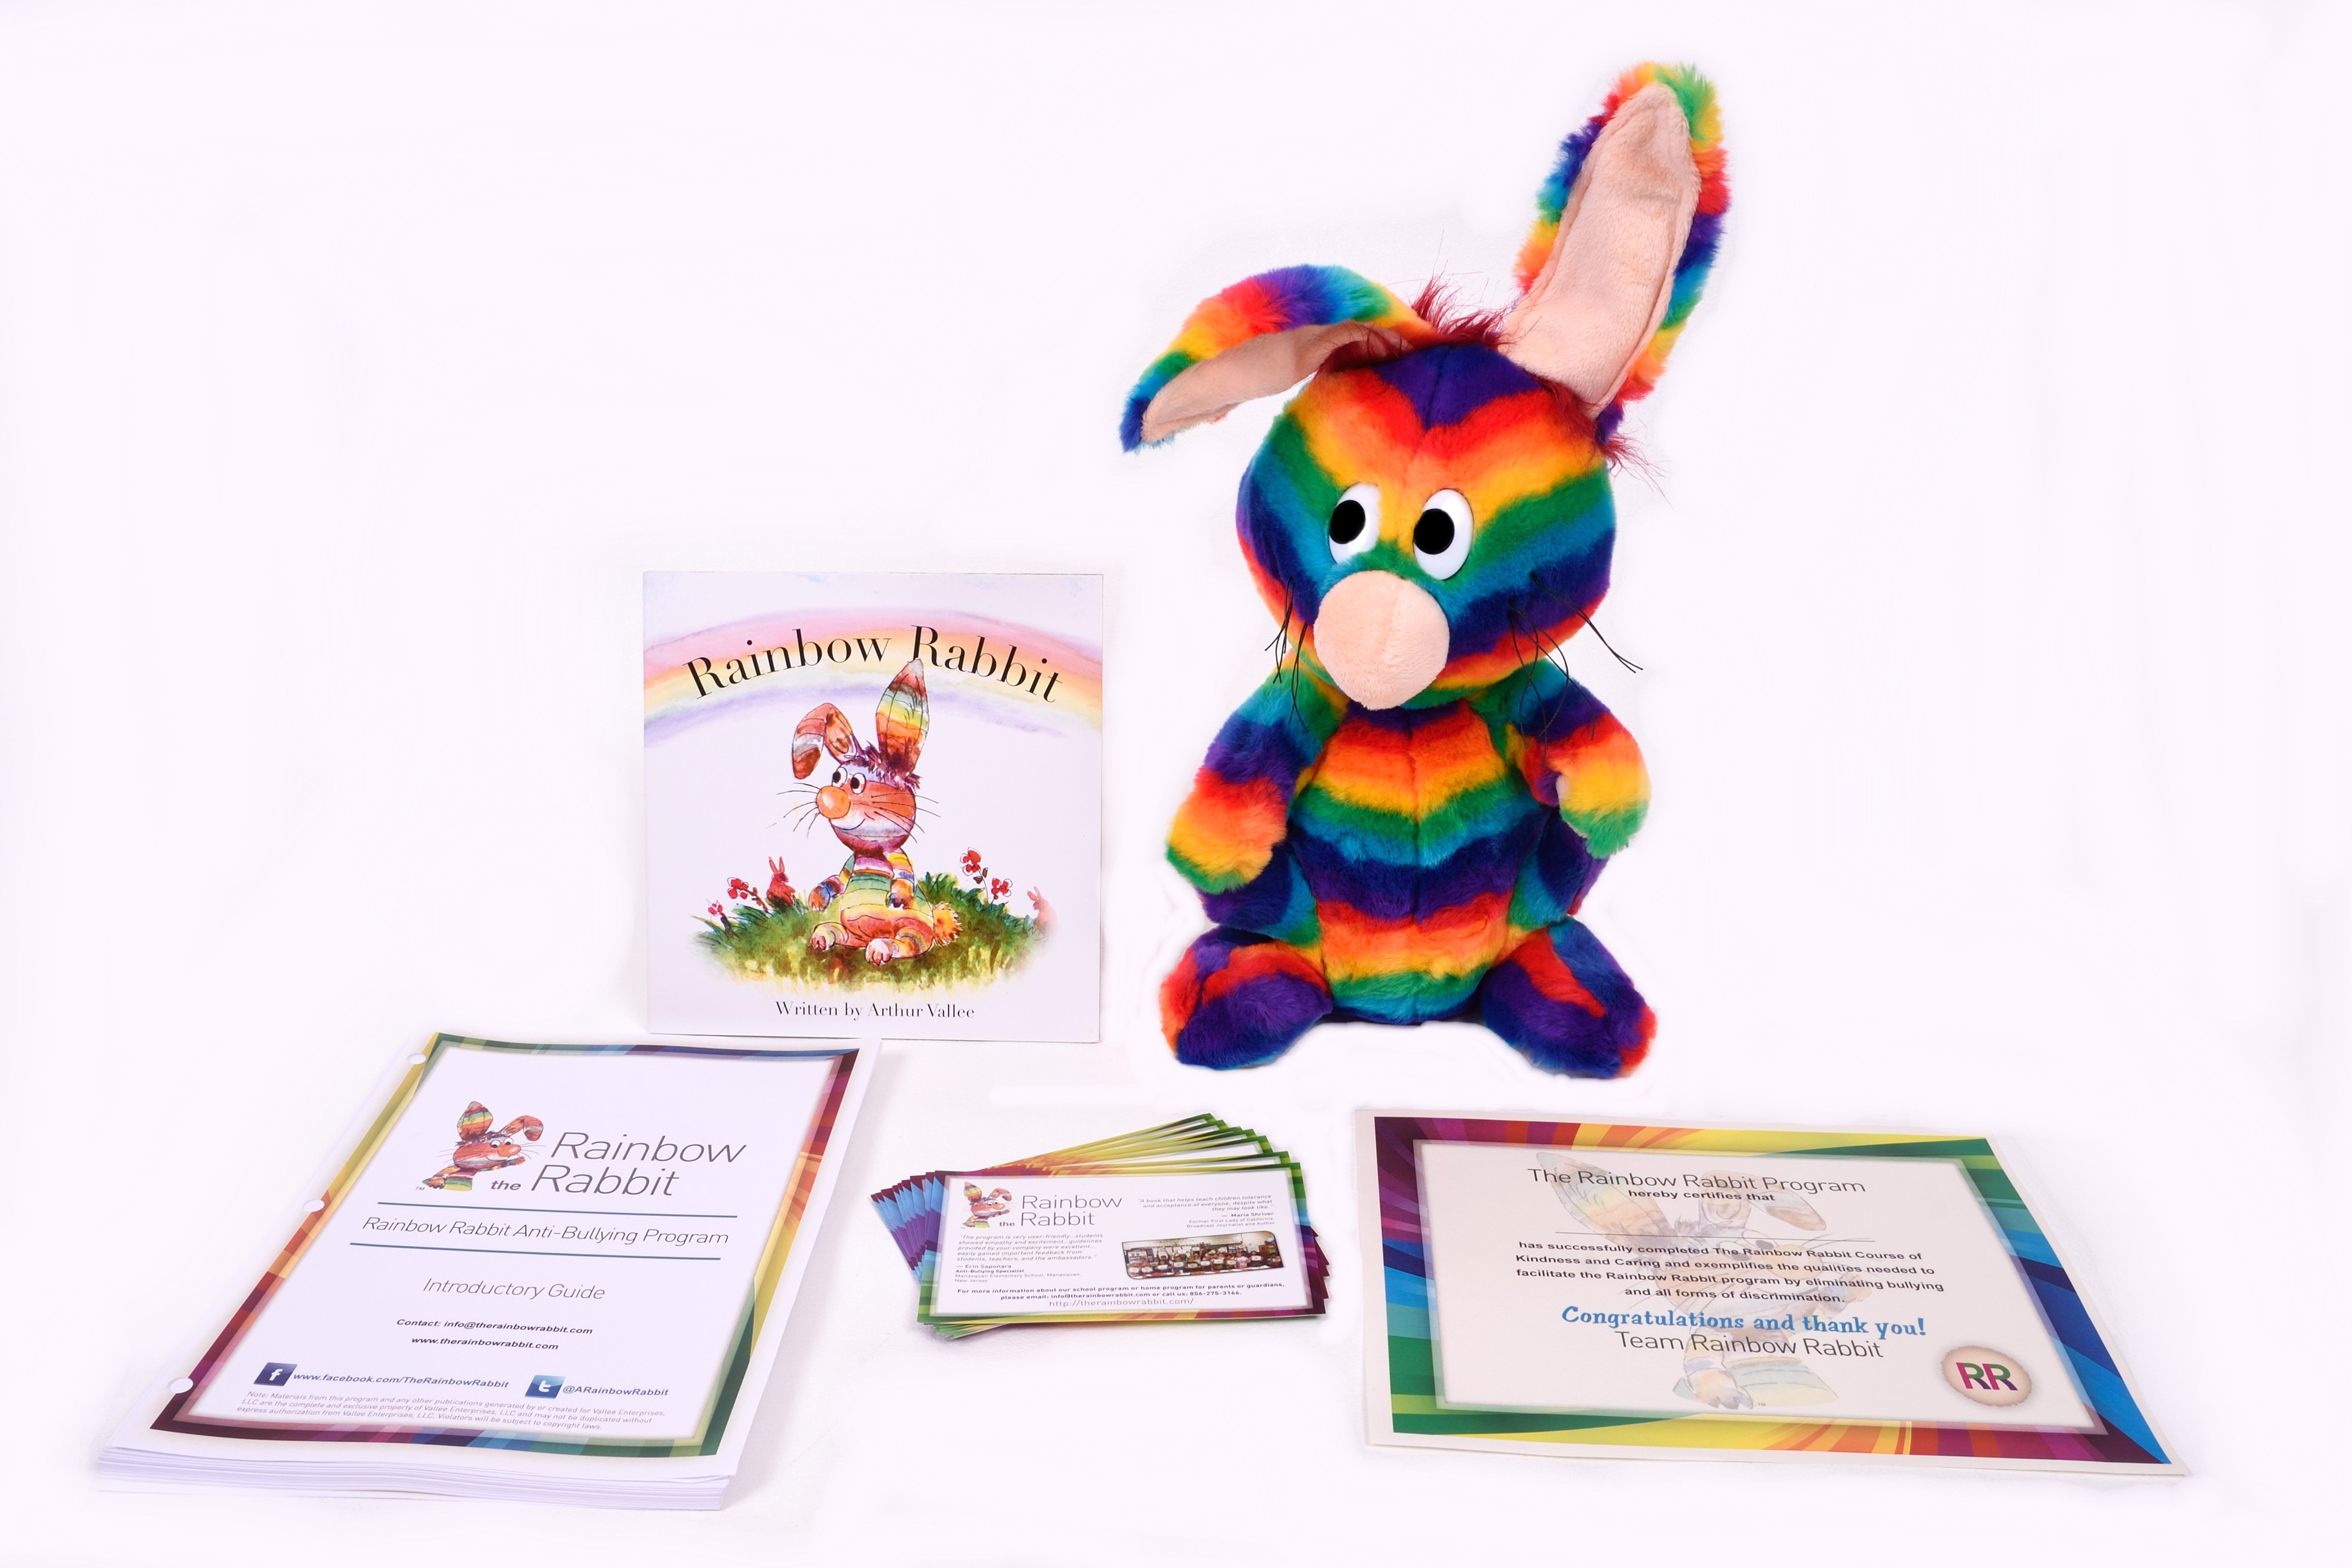 Rainbow Rabbit is a Kindergarden through Grade 4 Anti-Bullying Educational Program that empowers children, parents and educators to create a positive environment that celebrates unique differences.